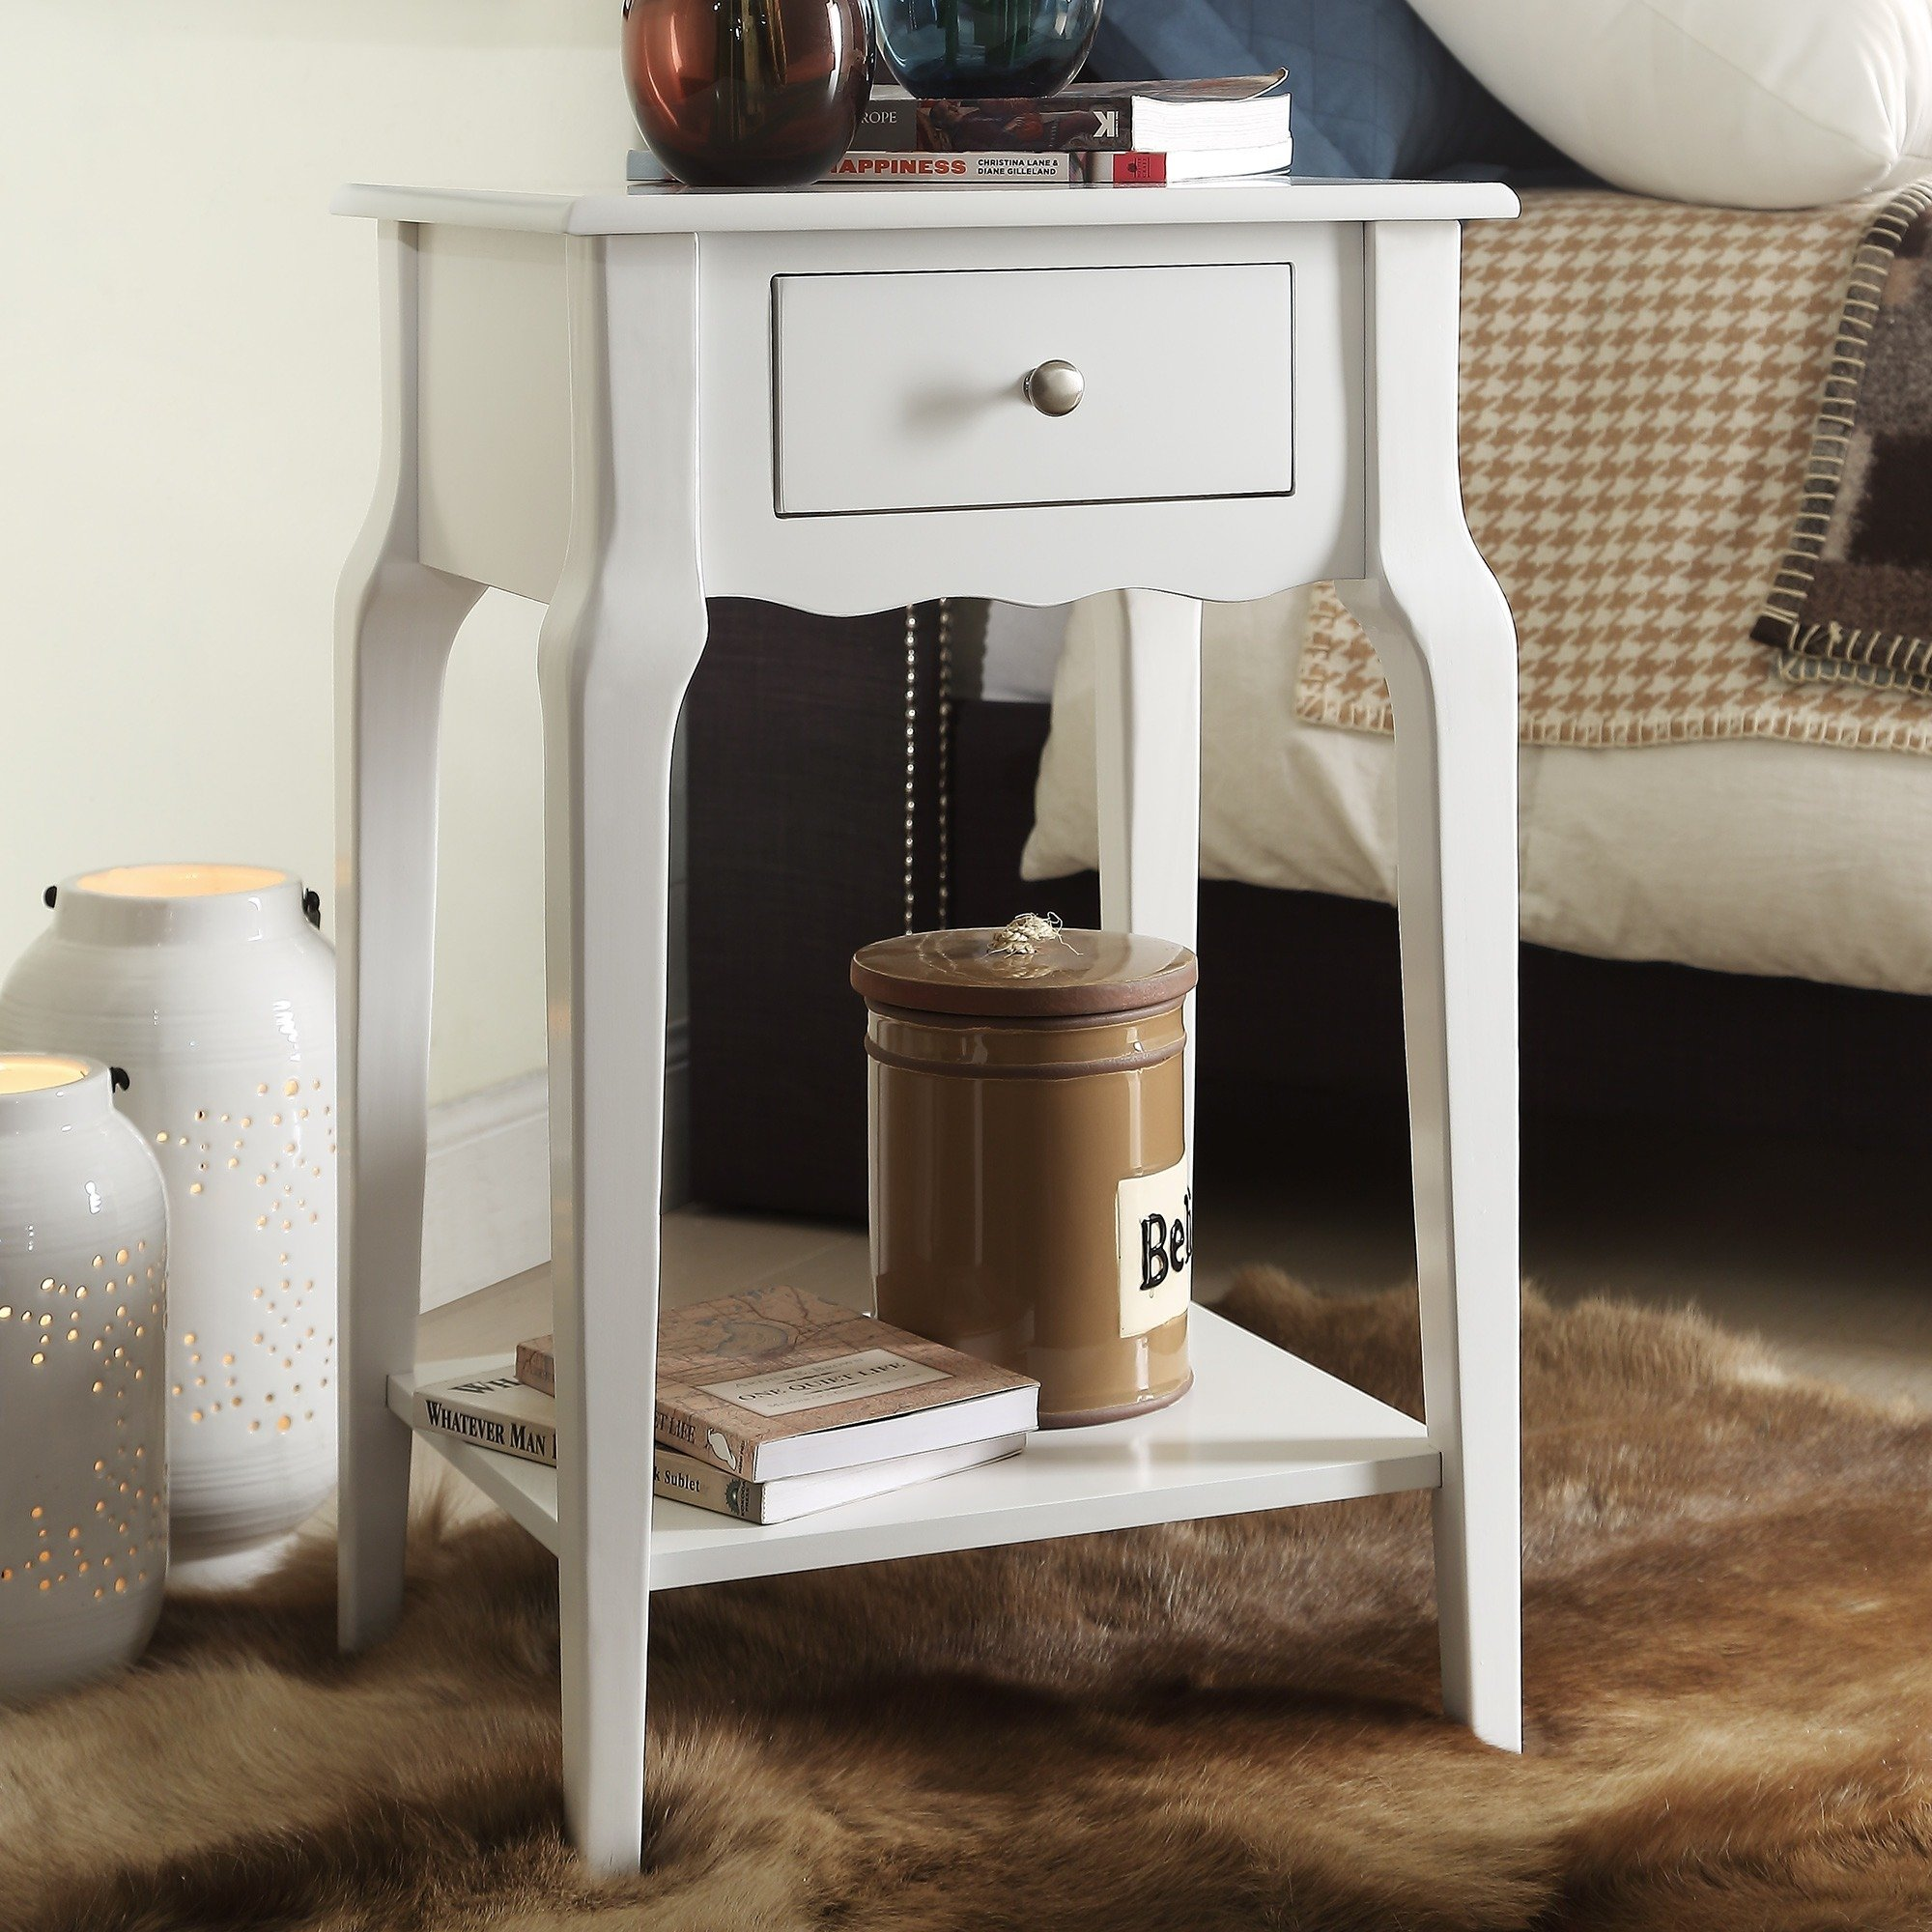 daniella drawer wood storage accent end table inspire bold tables free shipping today wooden lamp second hand kitchens worlds away timber furniture brisbane small circular